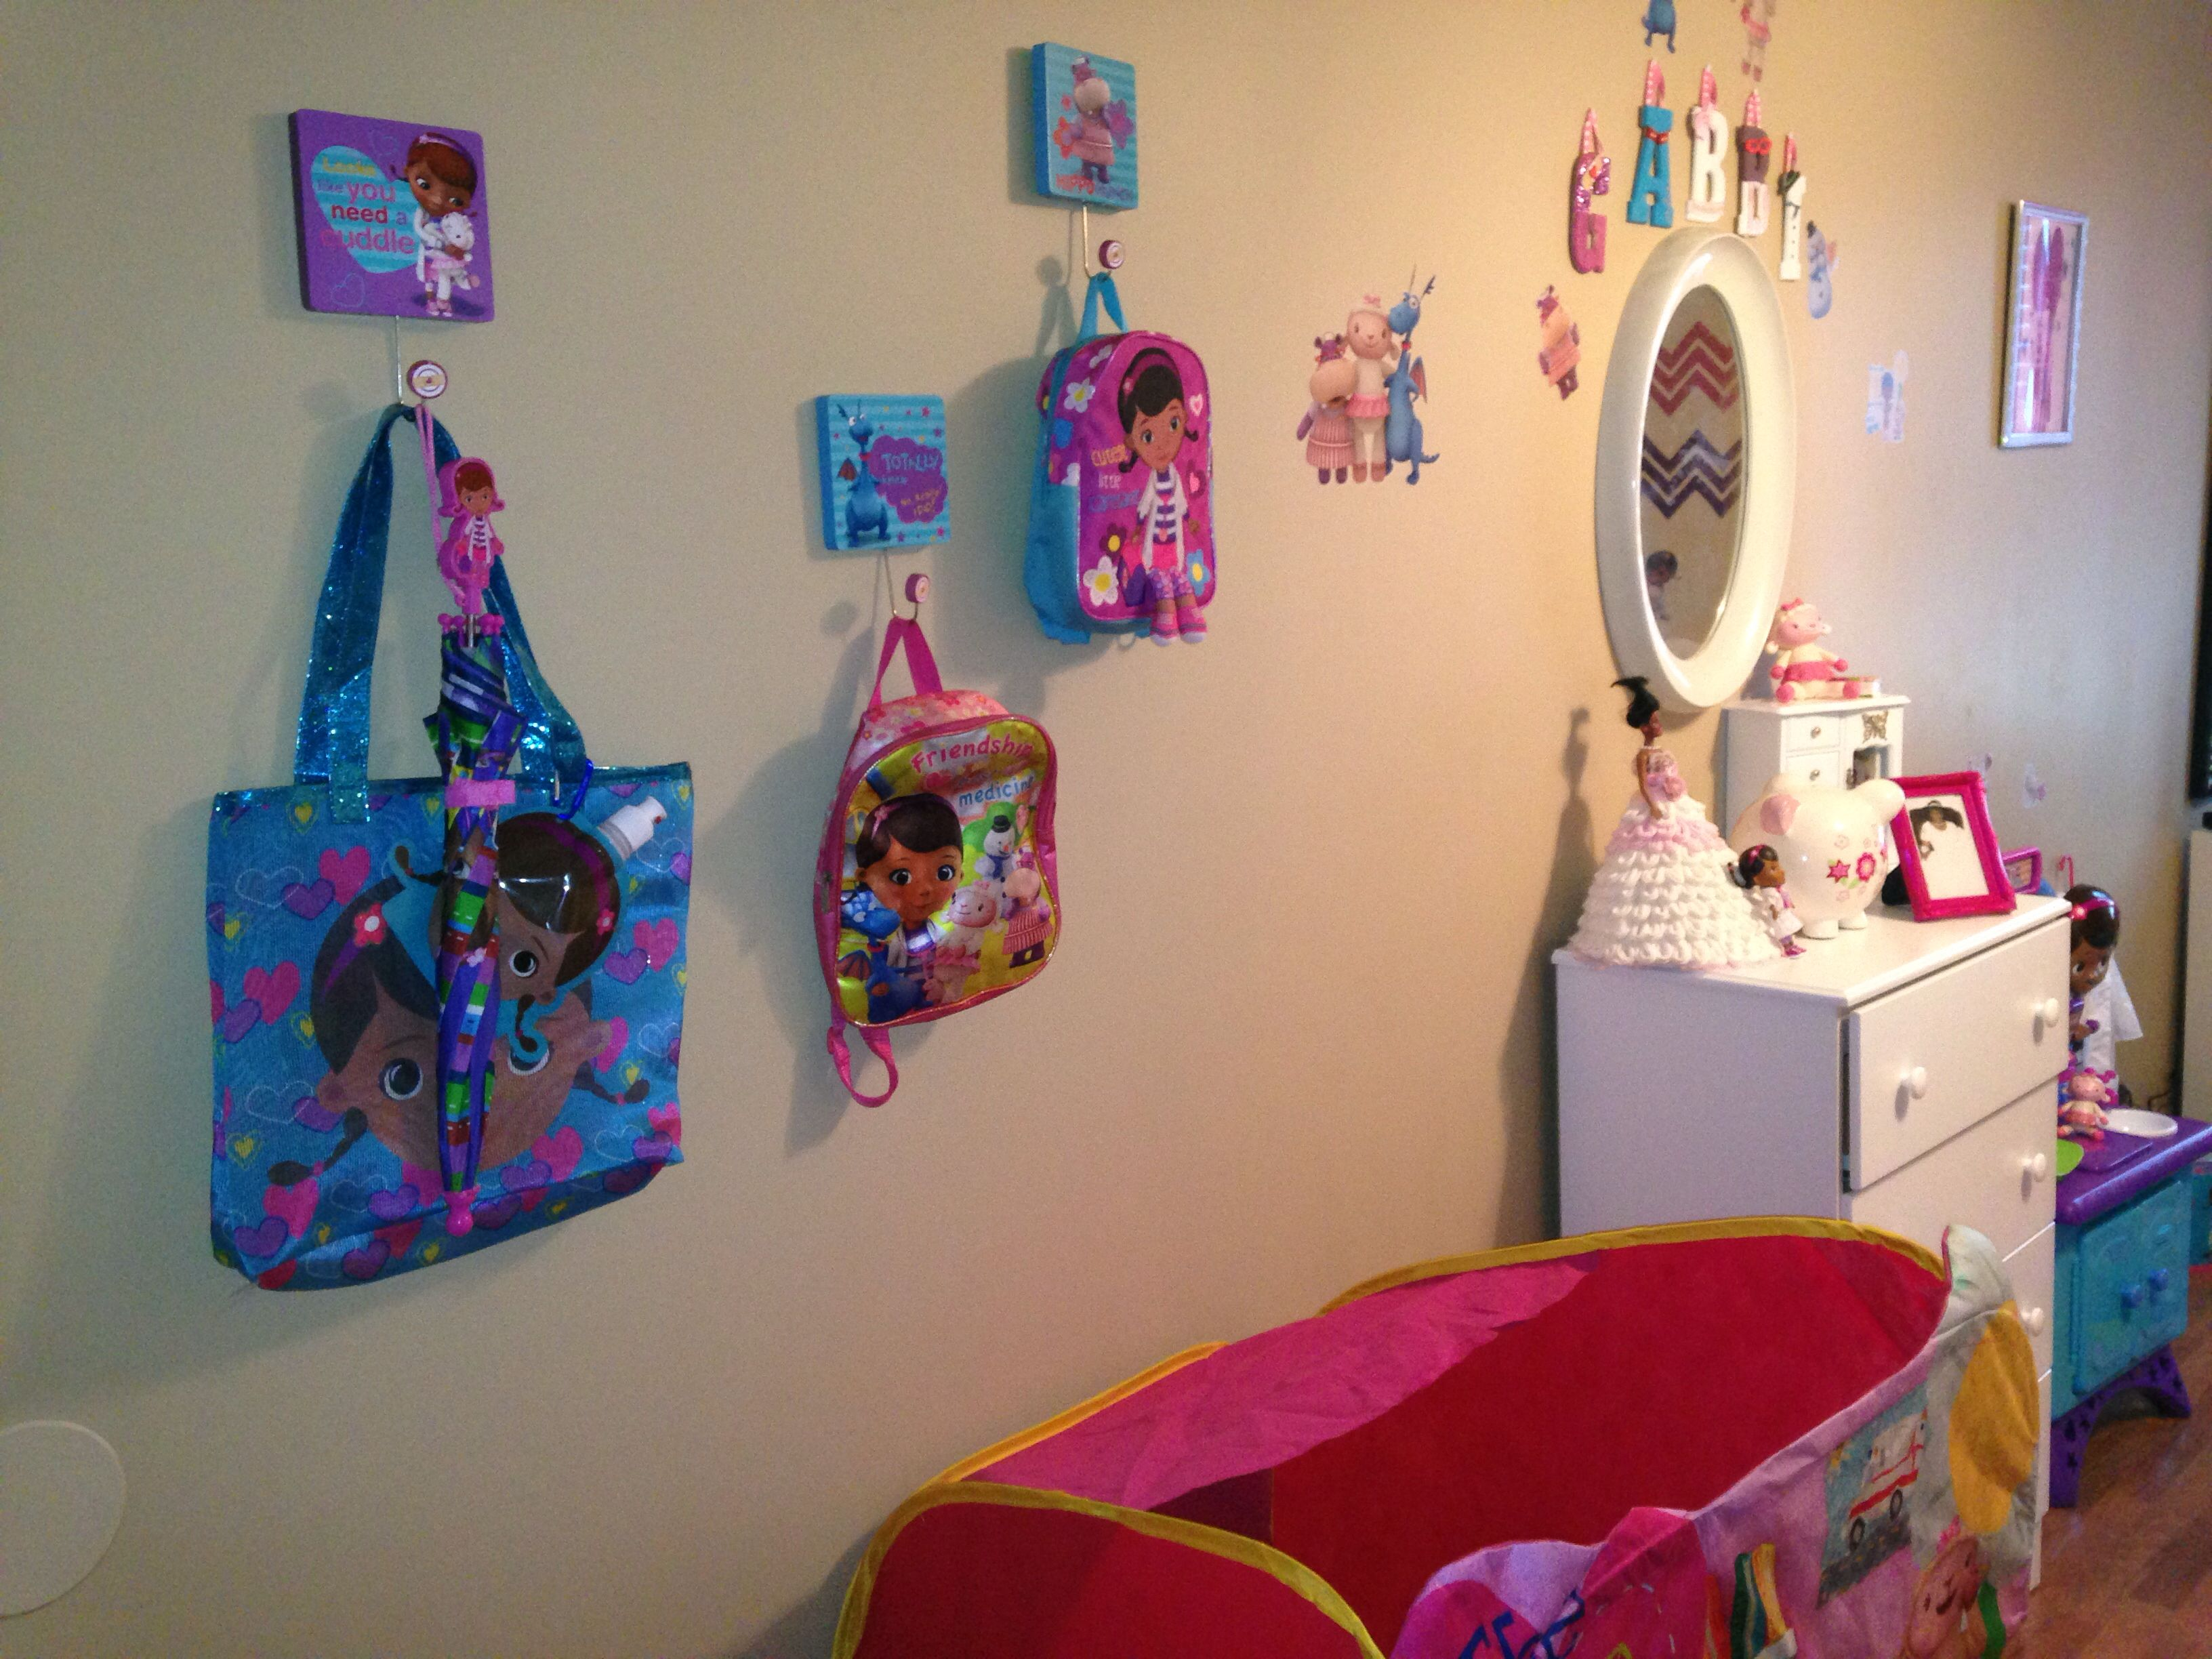 Pin by Tanzania Coley on Doc Mcstuffins Bedroom  Toy room decor